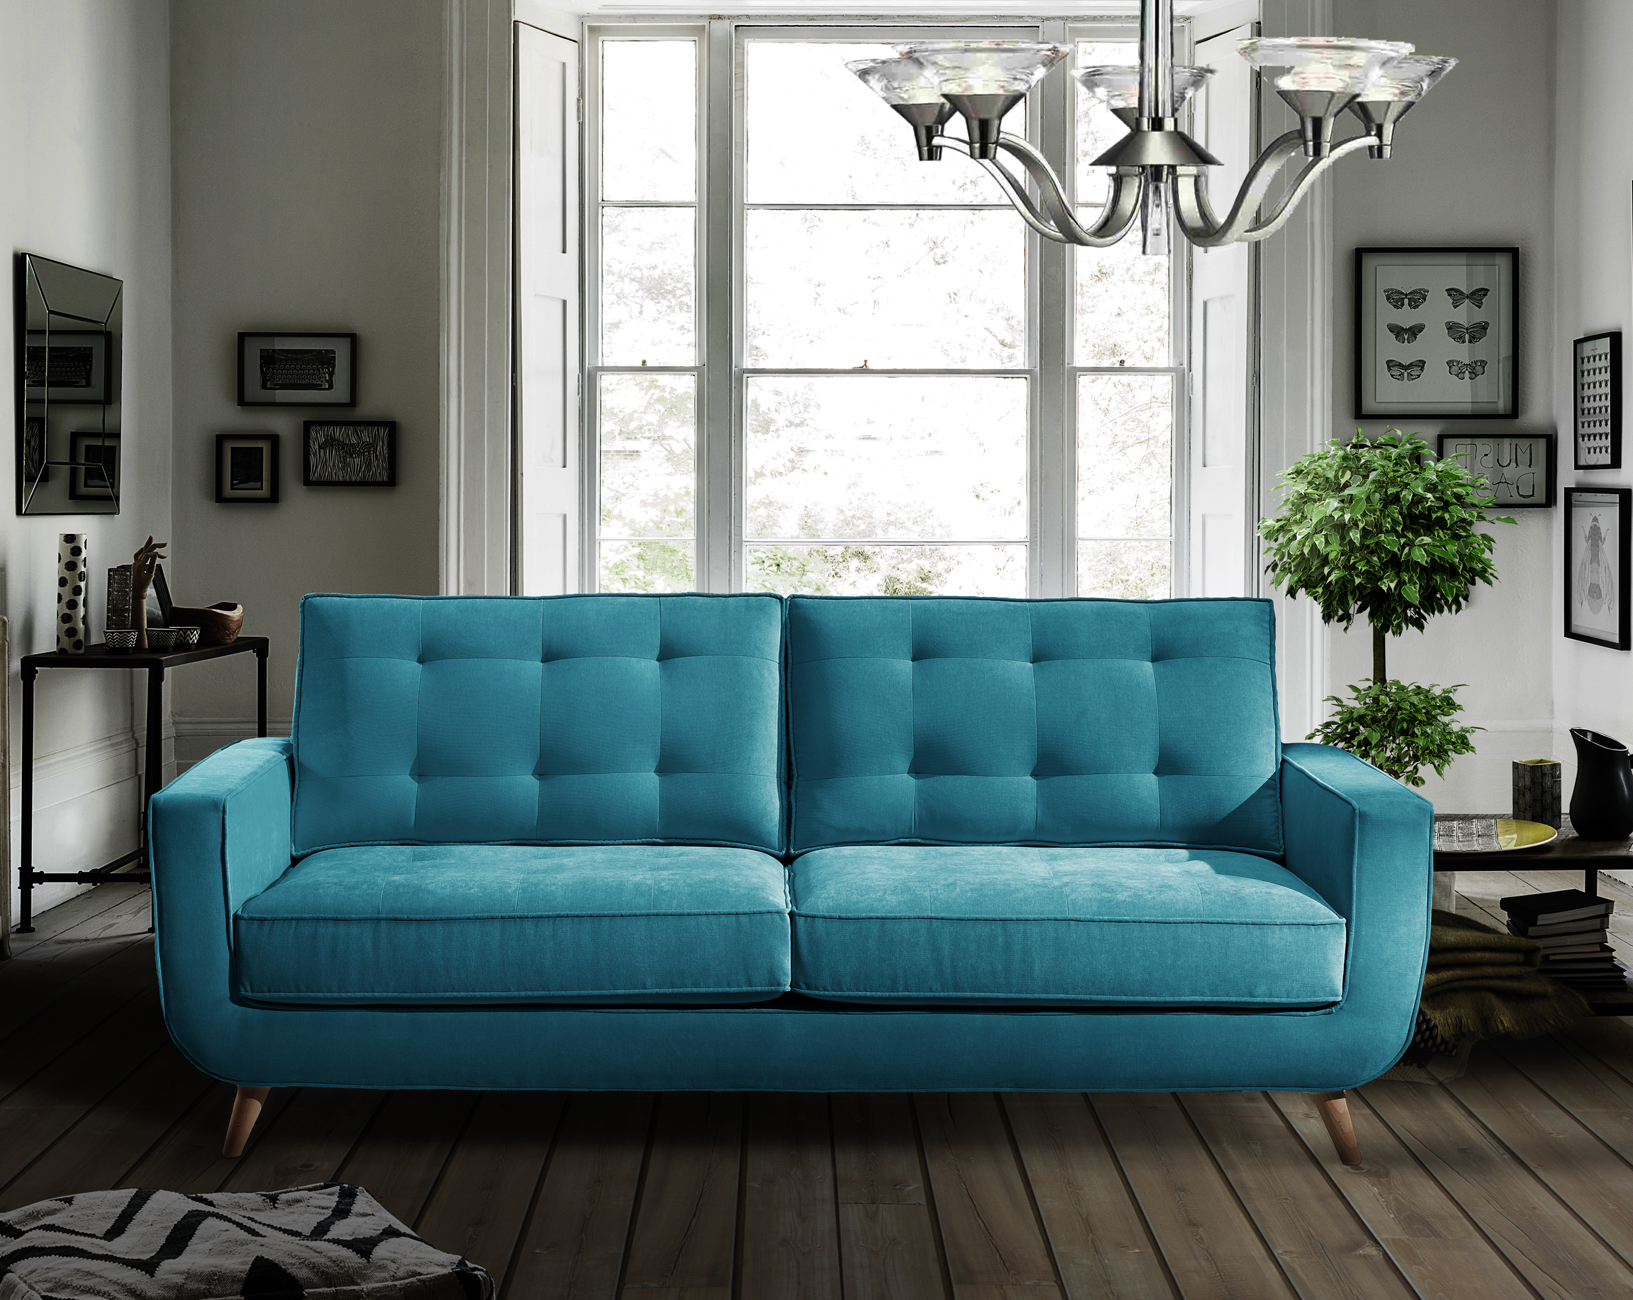 royals retro sofa interiør design